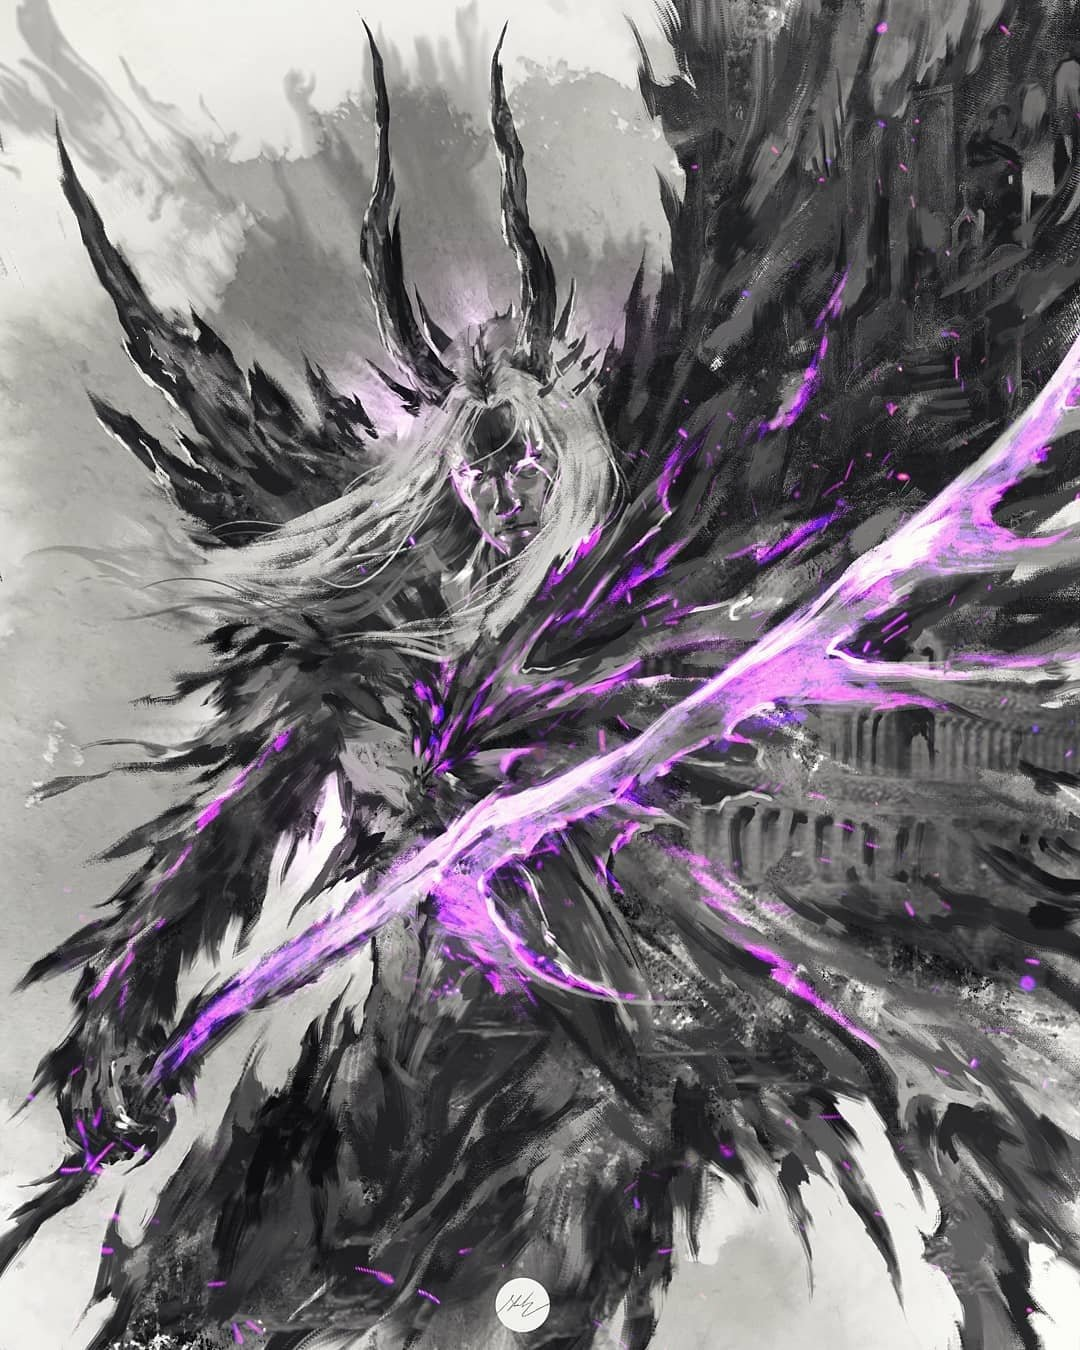 1boy closed_mouth dark_souls_i highres holding holding_sword holding_weapon horns long_hair looking_at_viewer male_focus monochrome purple_theme shimhaq solo souls_(series) sword the_four_kings weapon